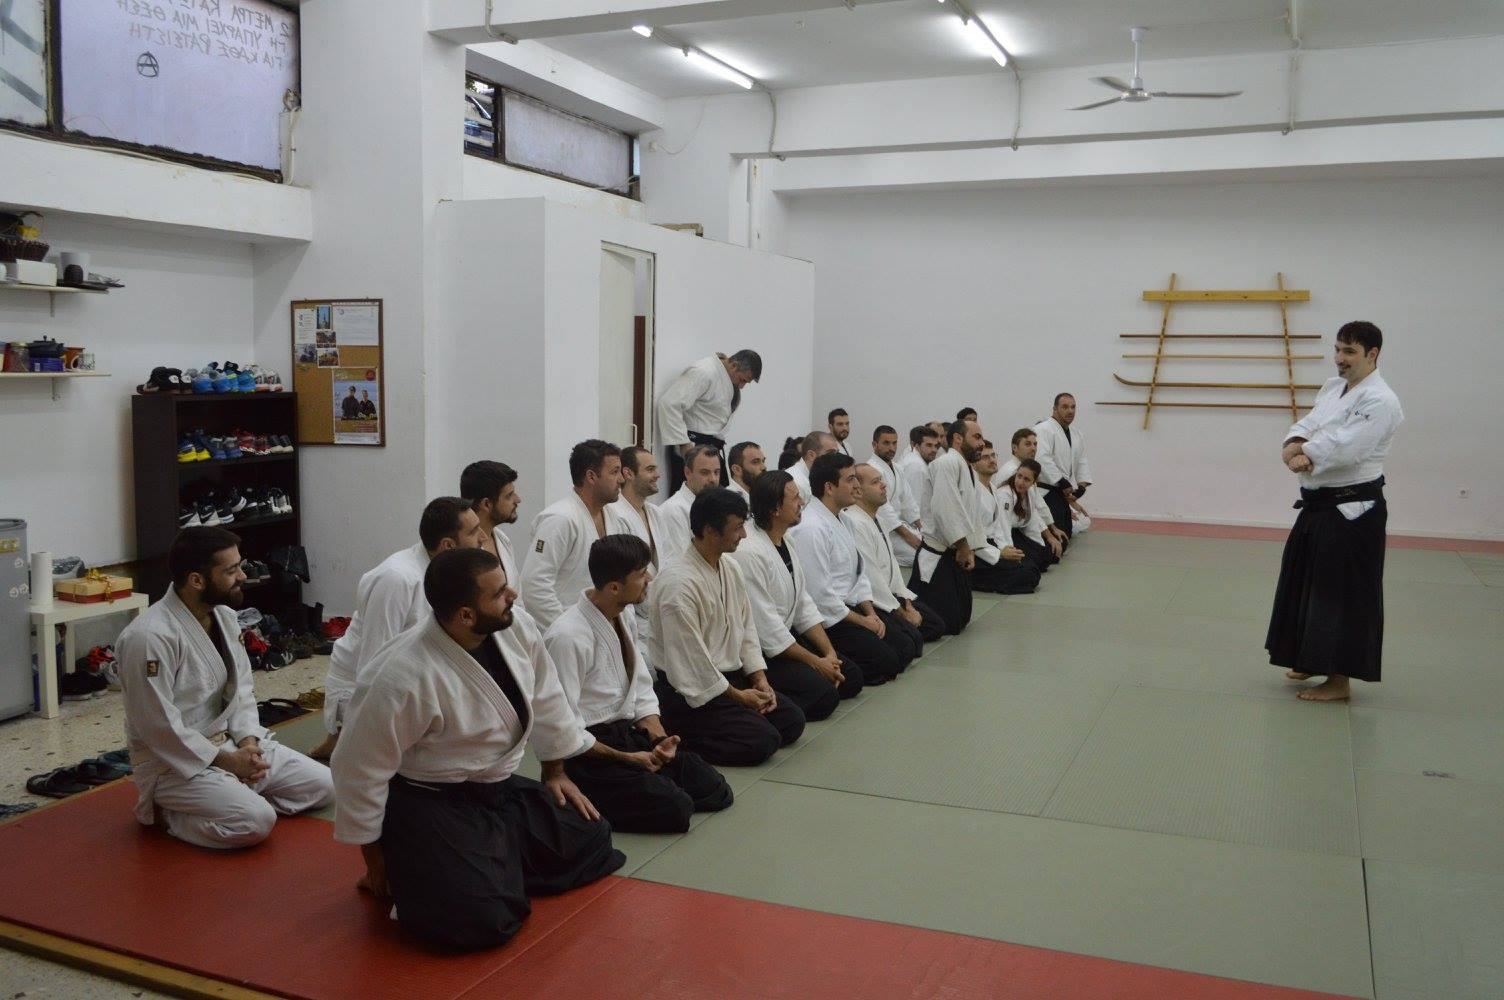 abc common aikido practice7